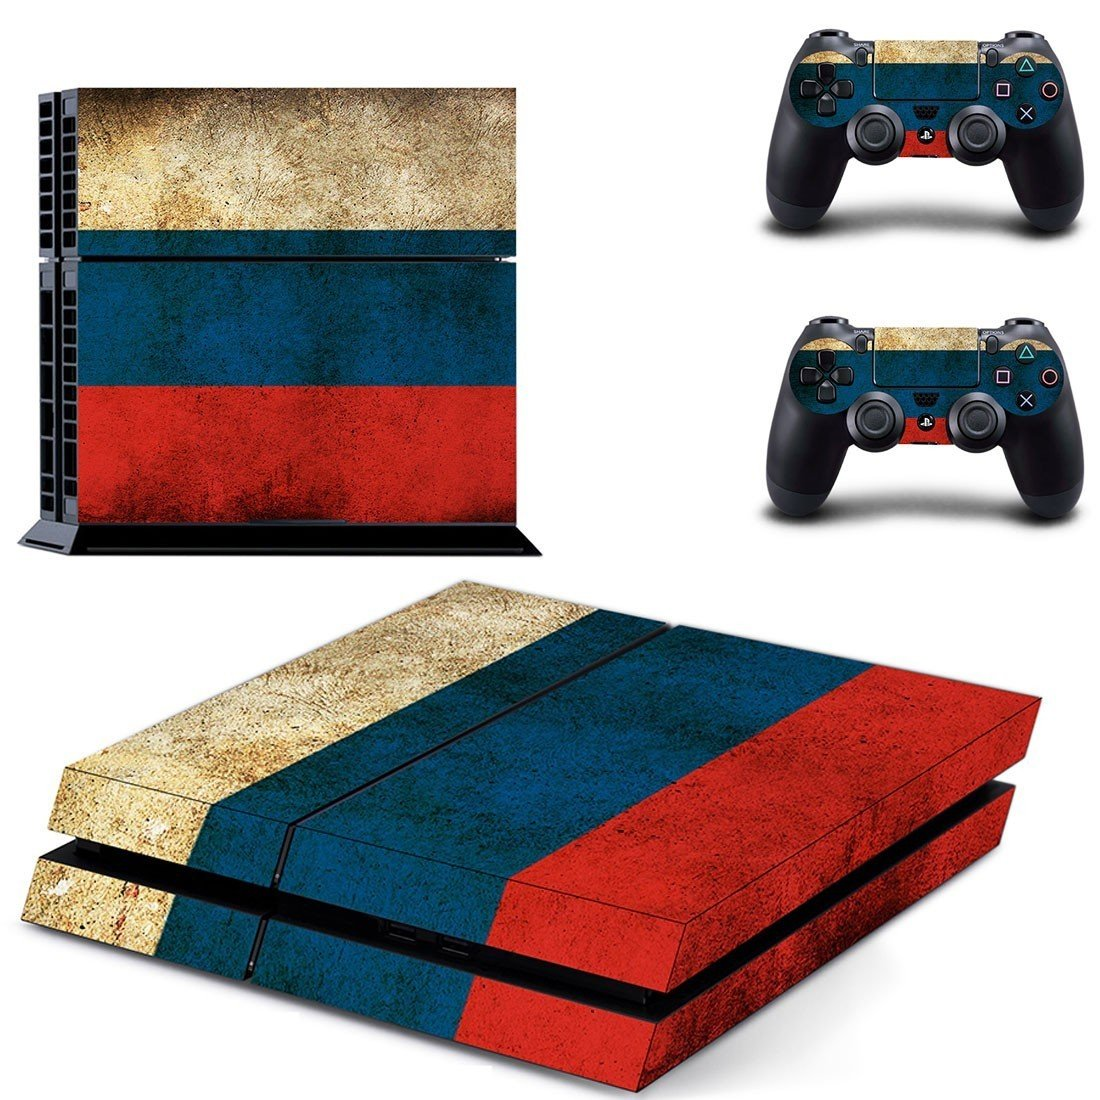 tri color wall ps4 skin decal for console and controllers